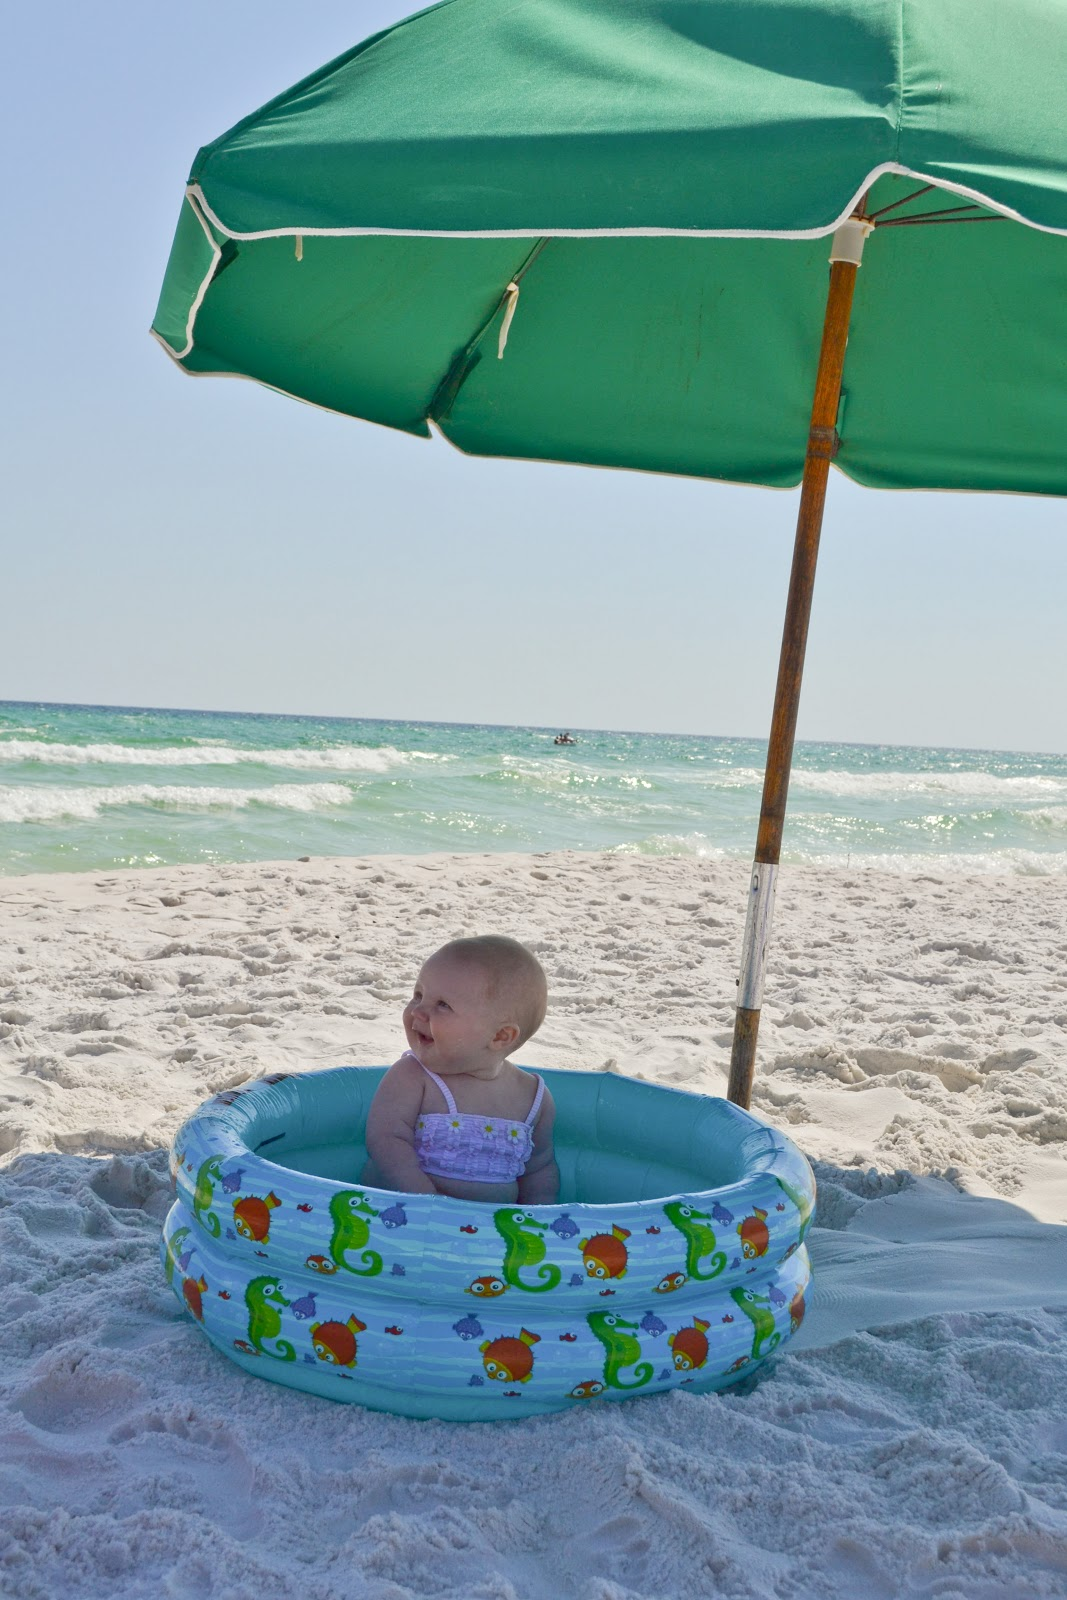 Little and lovely taking baby to the beach and enjoying it 3 month old baby swimming pool